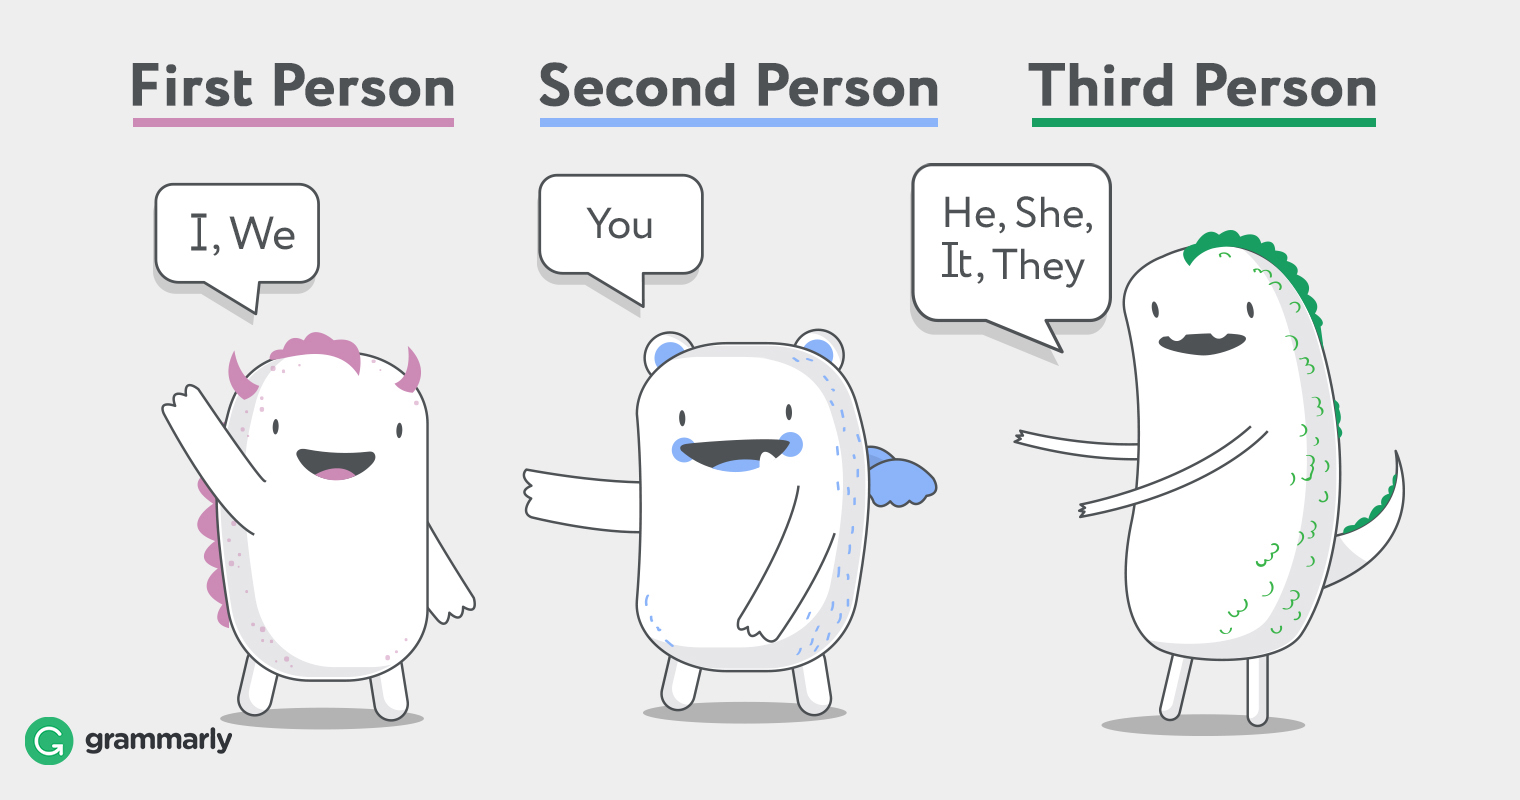 First, Second, and Third Person image